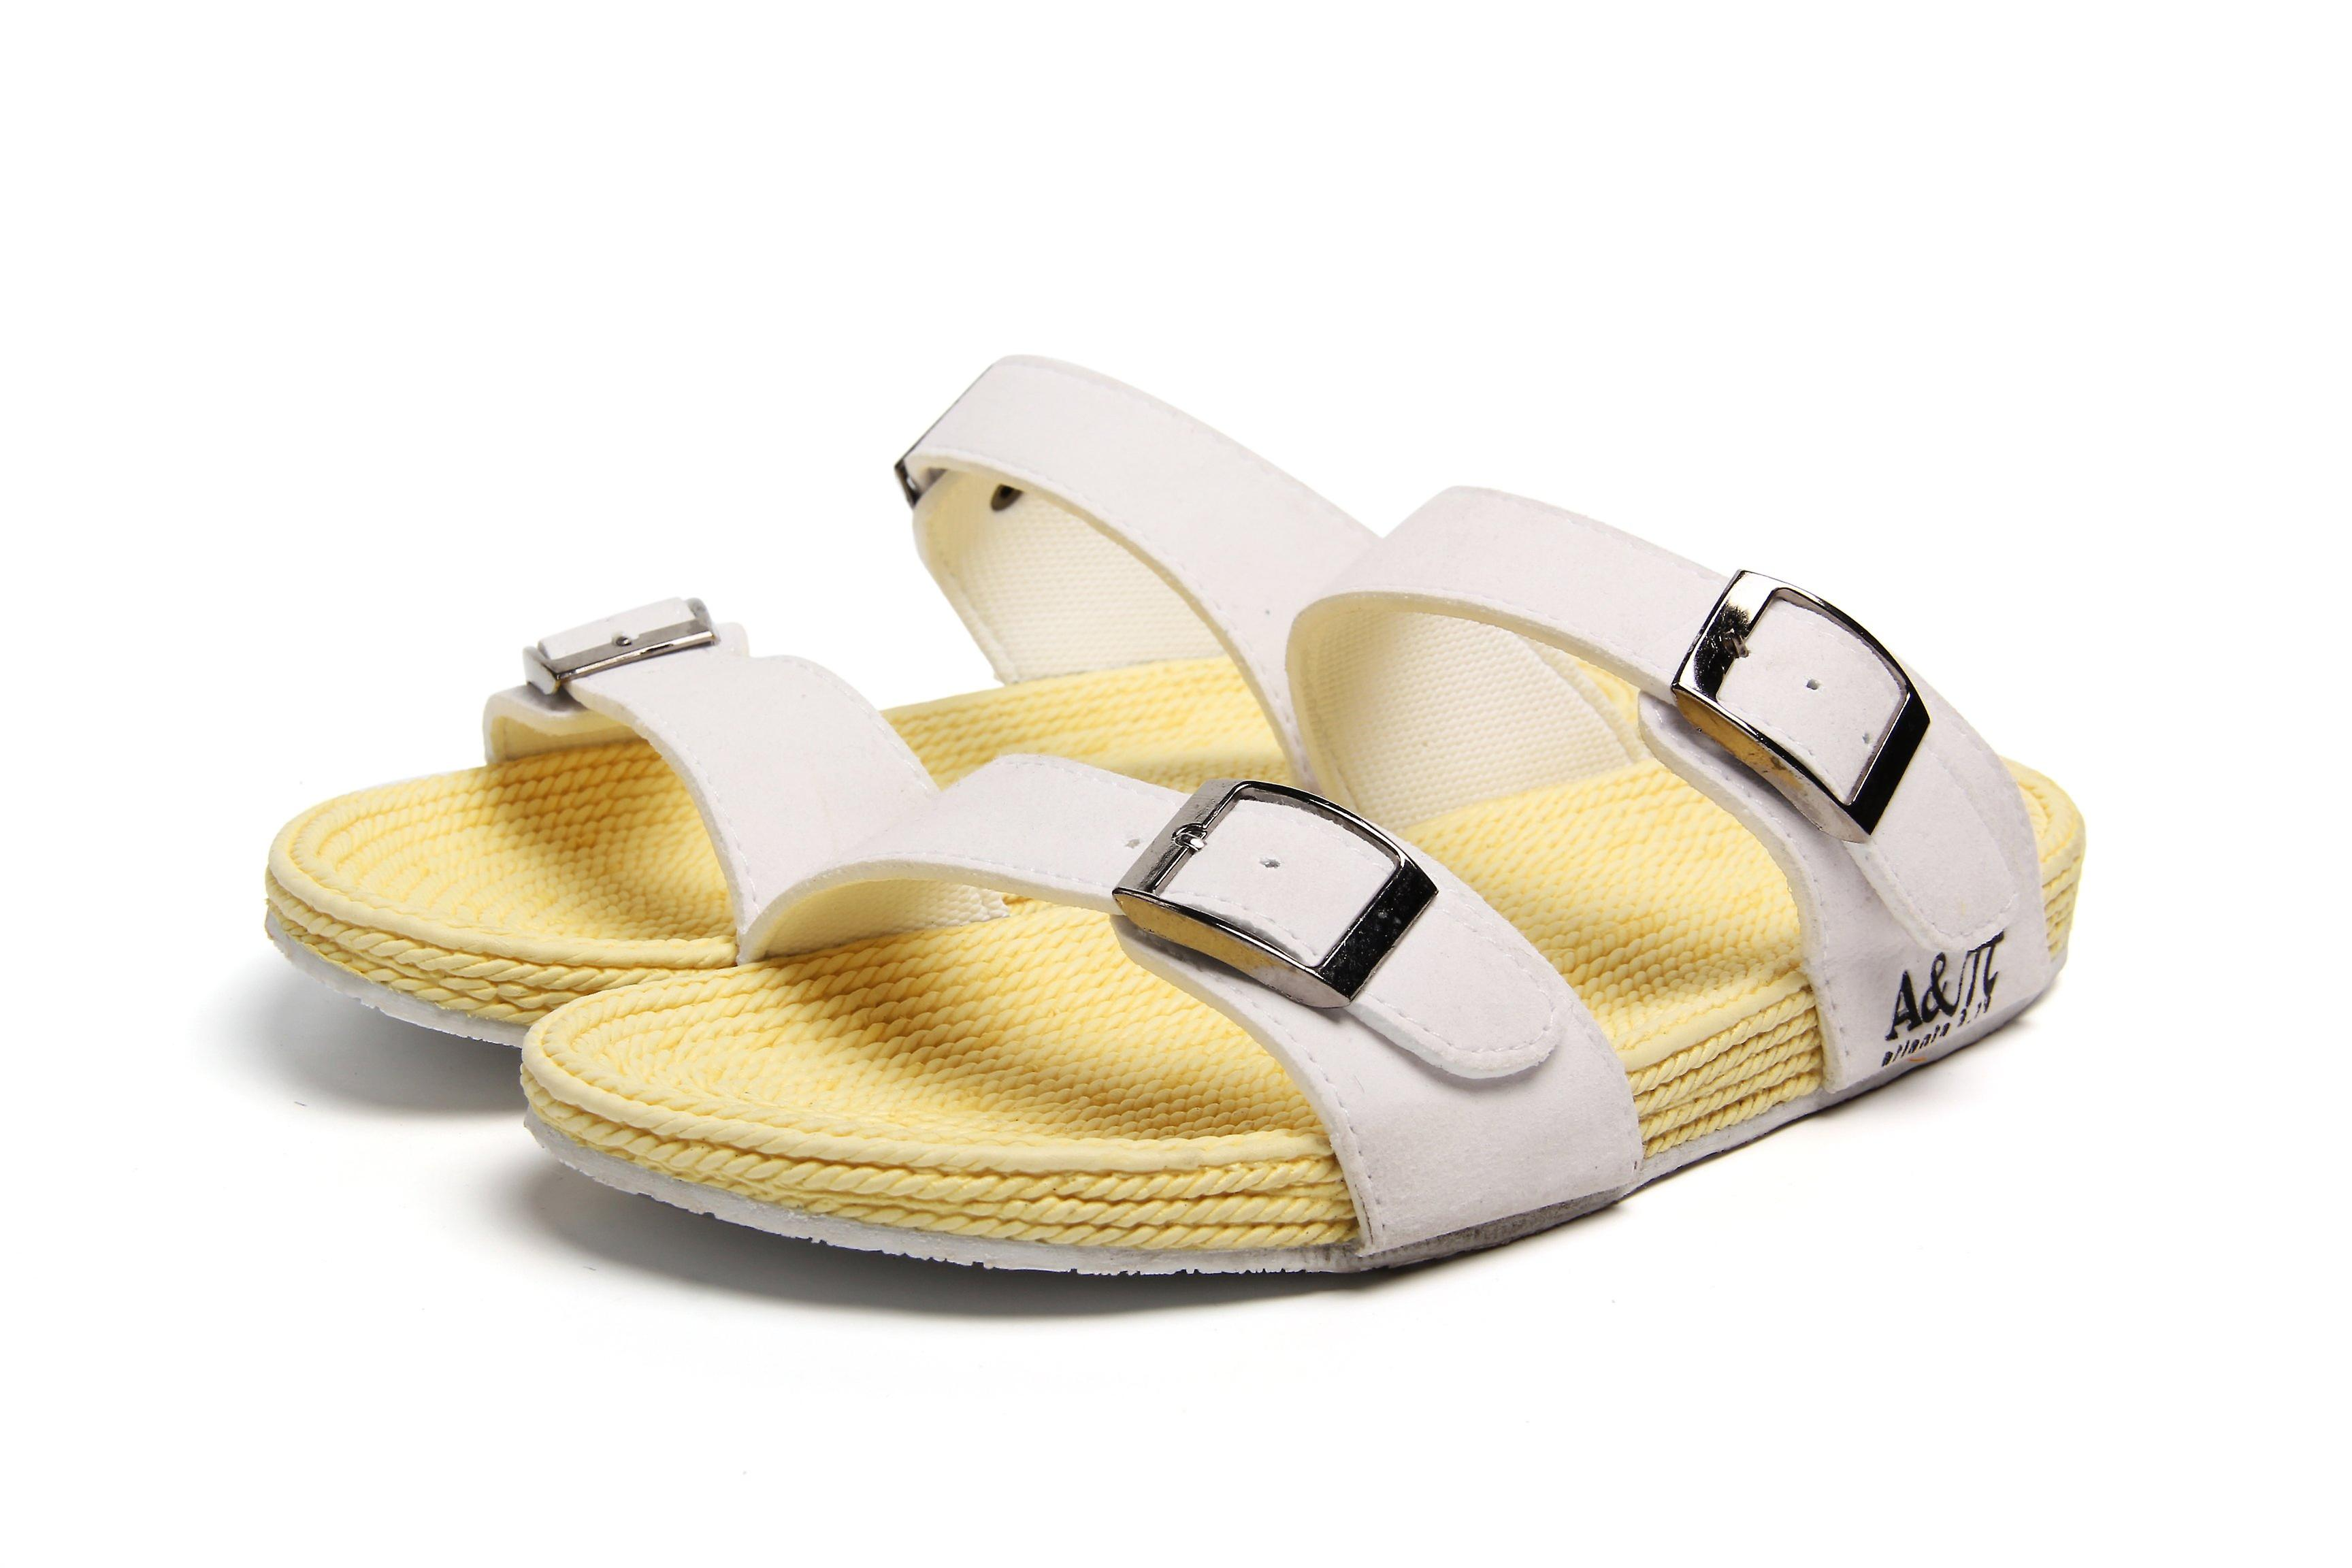 Atlantis Shoes Women Supportive Cushioned Comfortable Sandals Dual Band White-beige